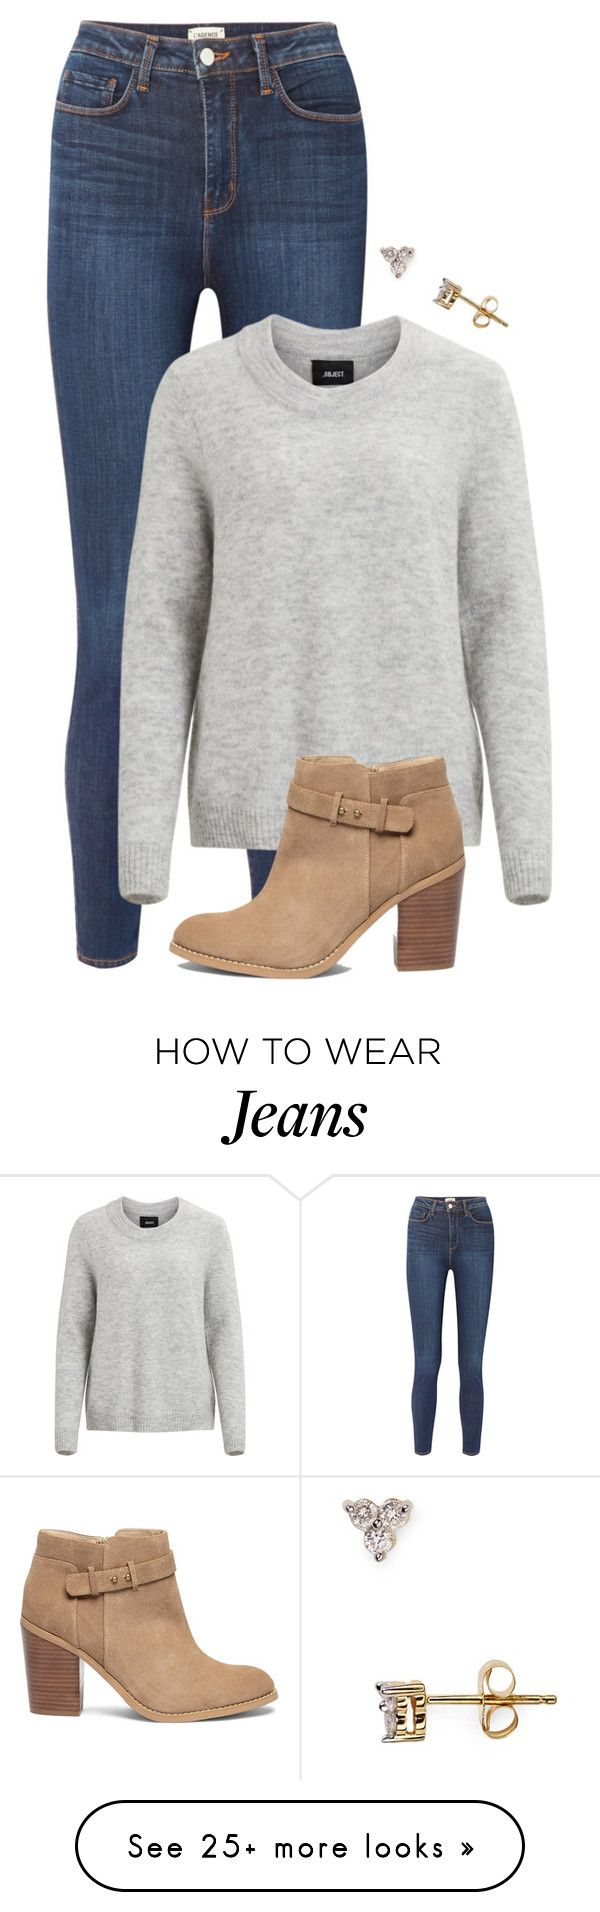 """Knitted Pullover. Skinny Jeans. Ankle Boots & Cluster Stud Earrings"" by coolchick1630 on Polyvore featuring L'Agence, Object Collectors Item, Sole Society and Adina Reyter"